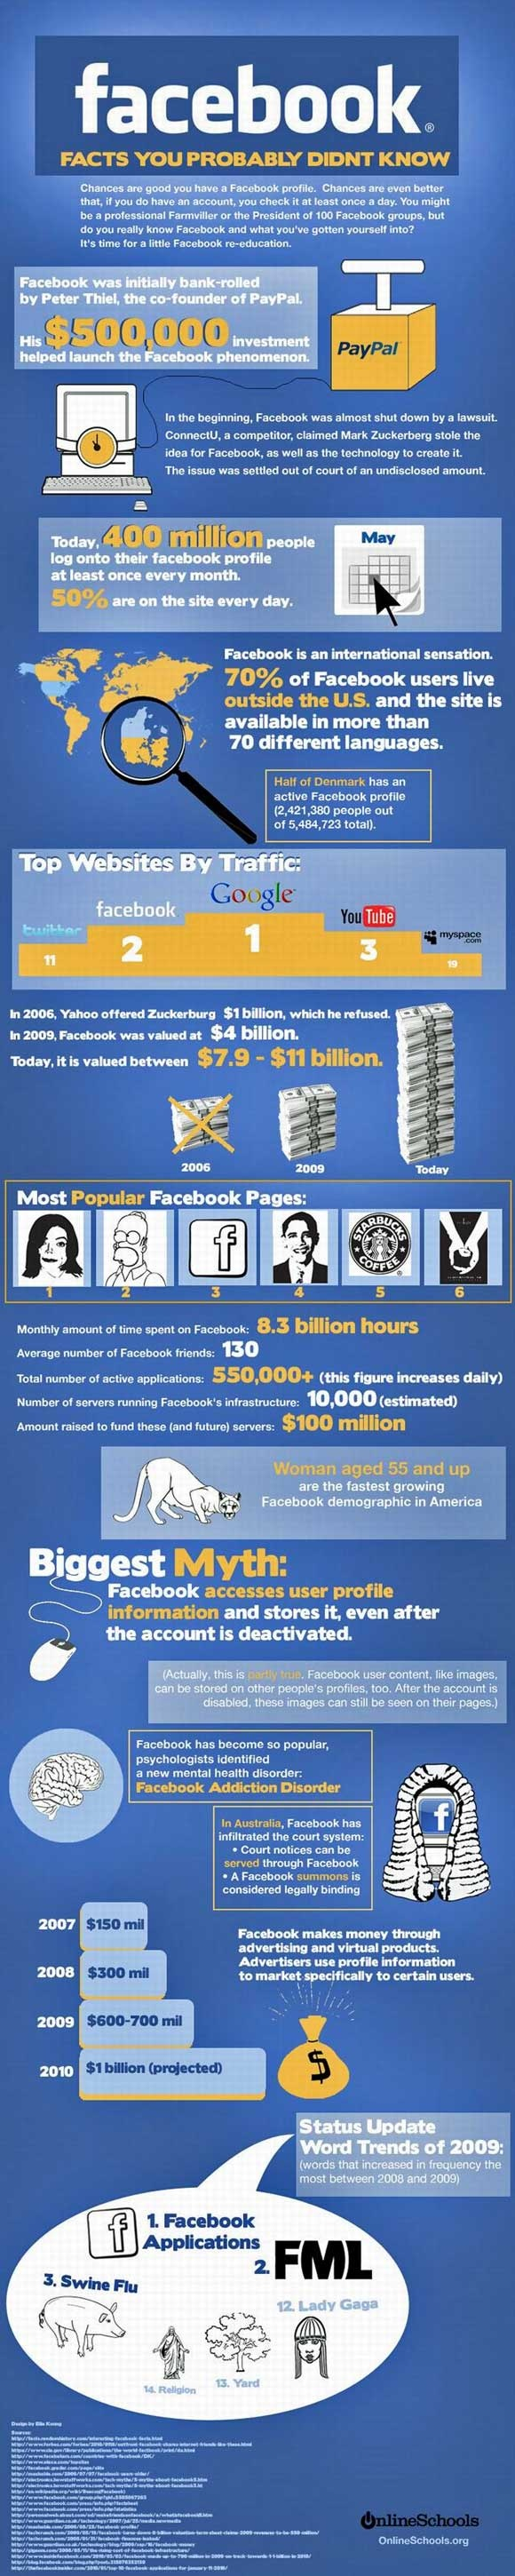 Infographic: Facebook Facts Your Probably Didn't Know